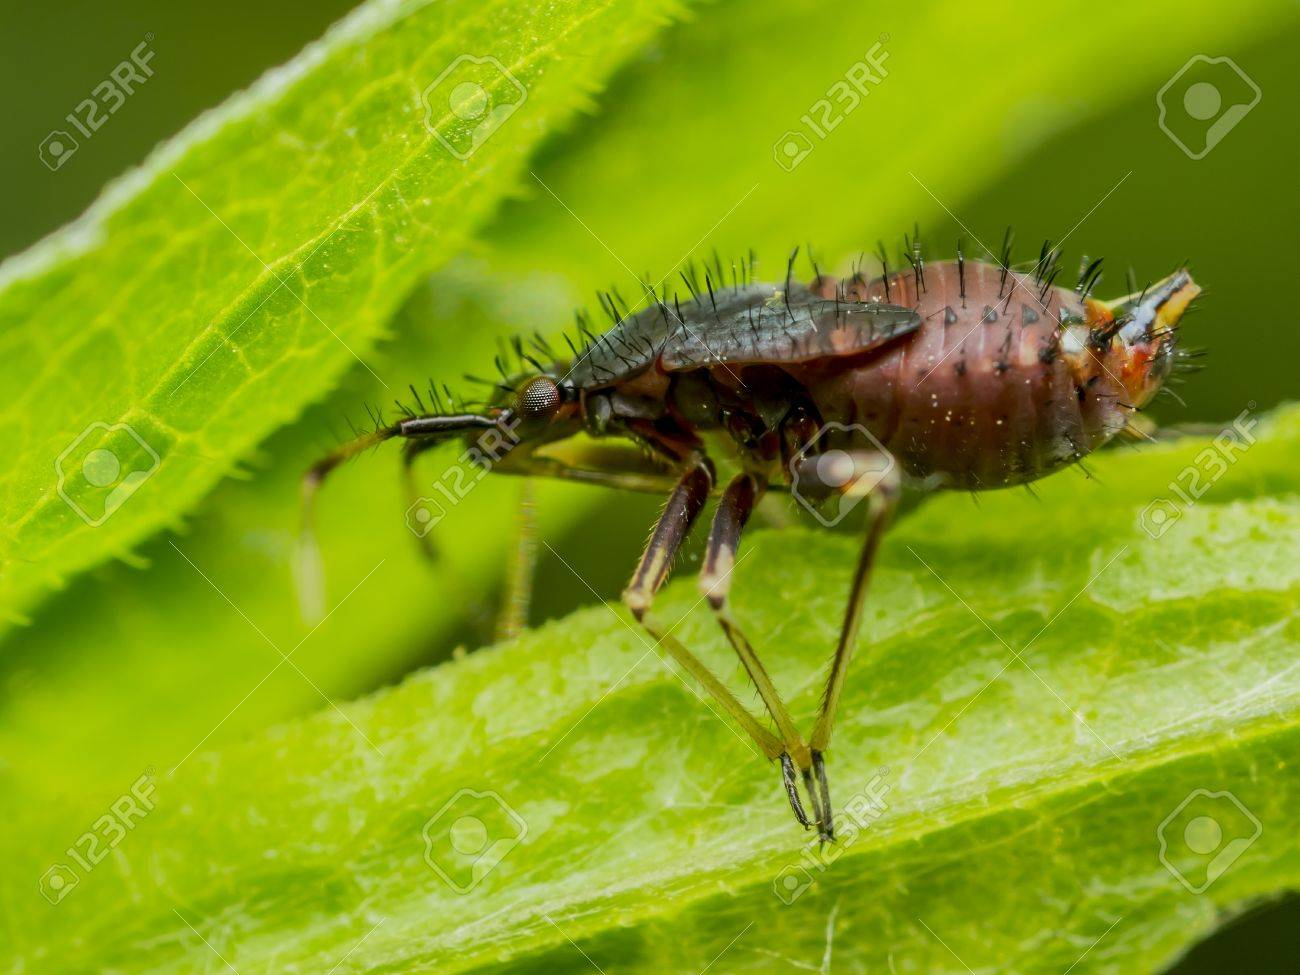 Springtail Insect On A Green Leaf  Springtails  Collembola  form the largest of the three lineages of modern hexapods that are no longer considered insects  the other two are the Protura and Diplura Stock Photo - 18366952